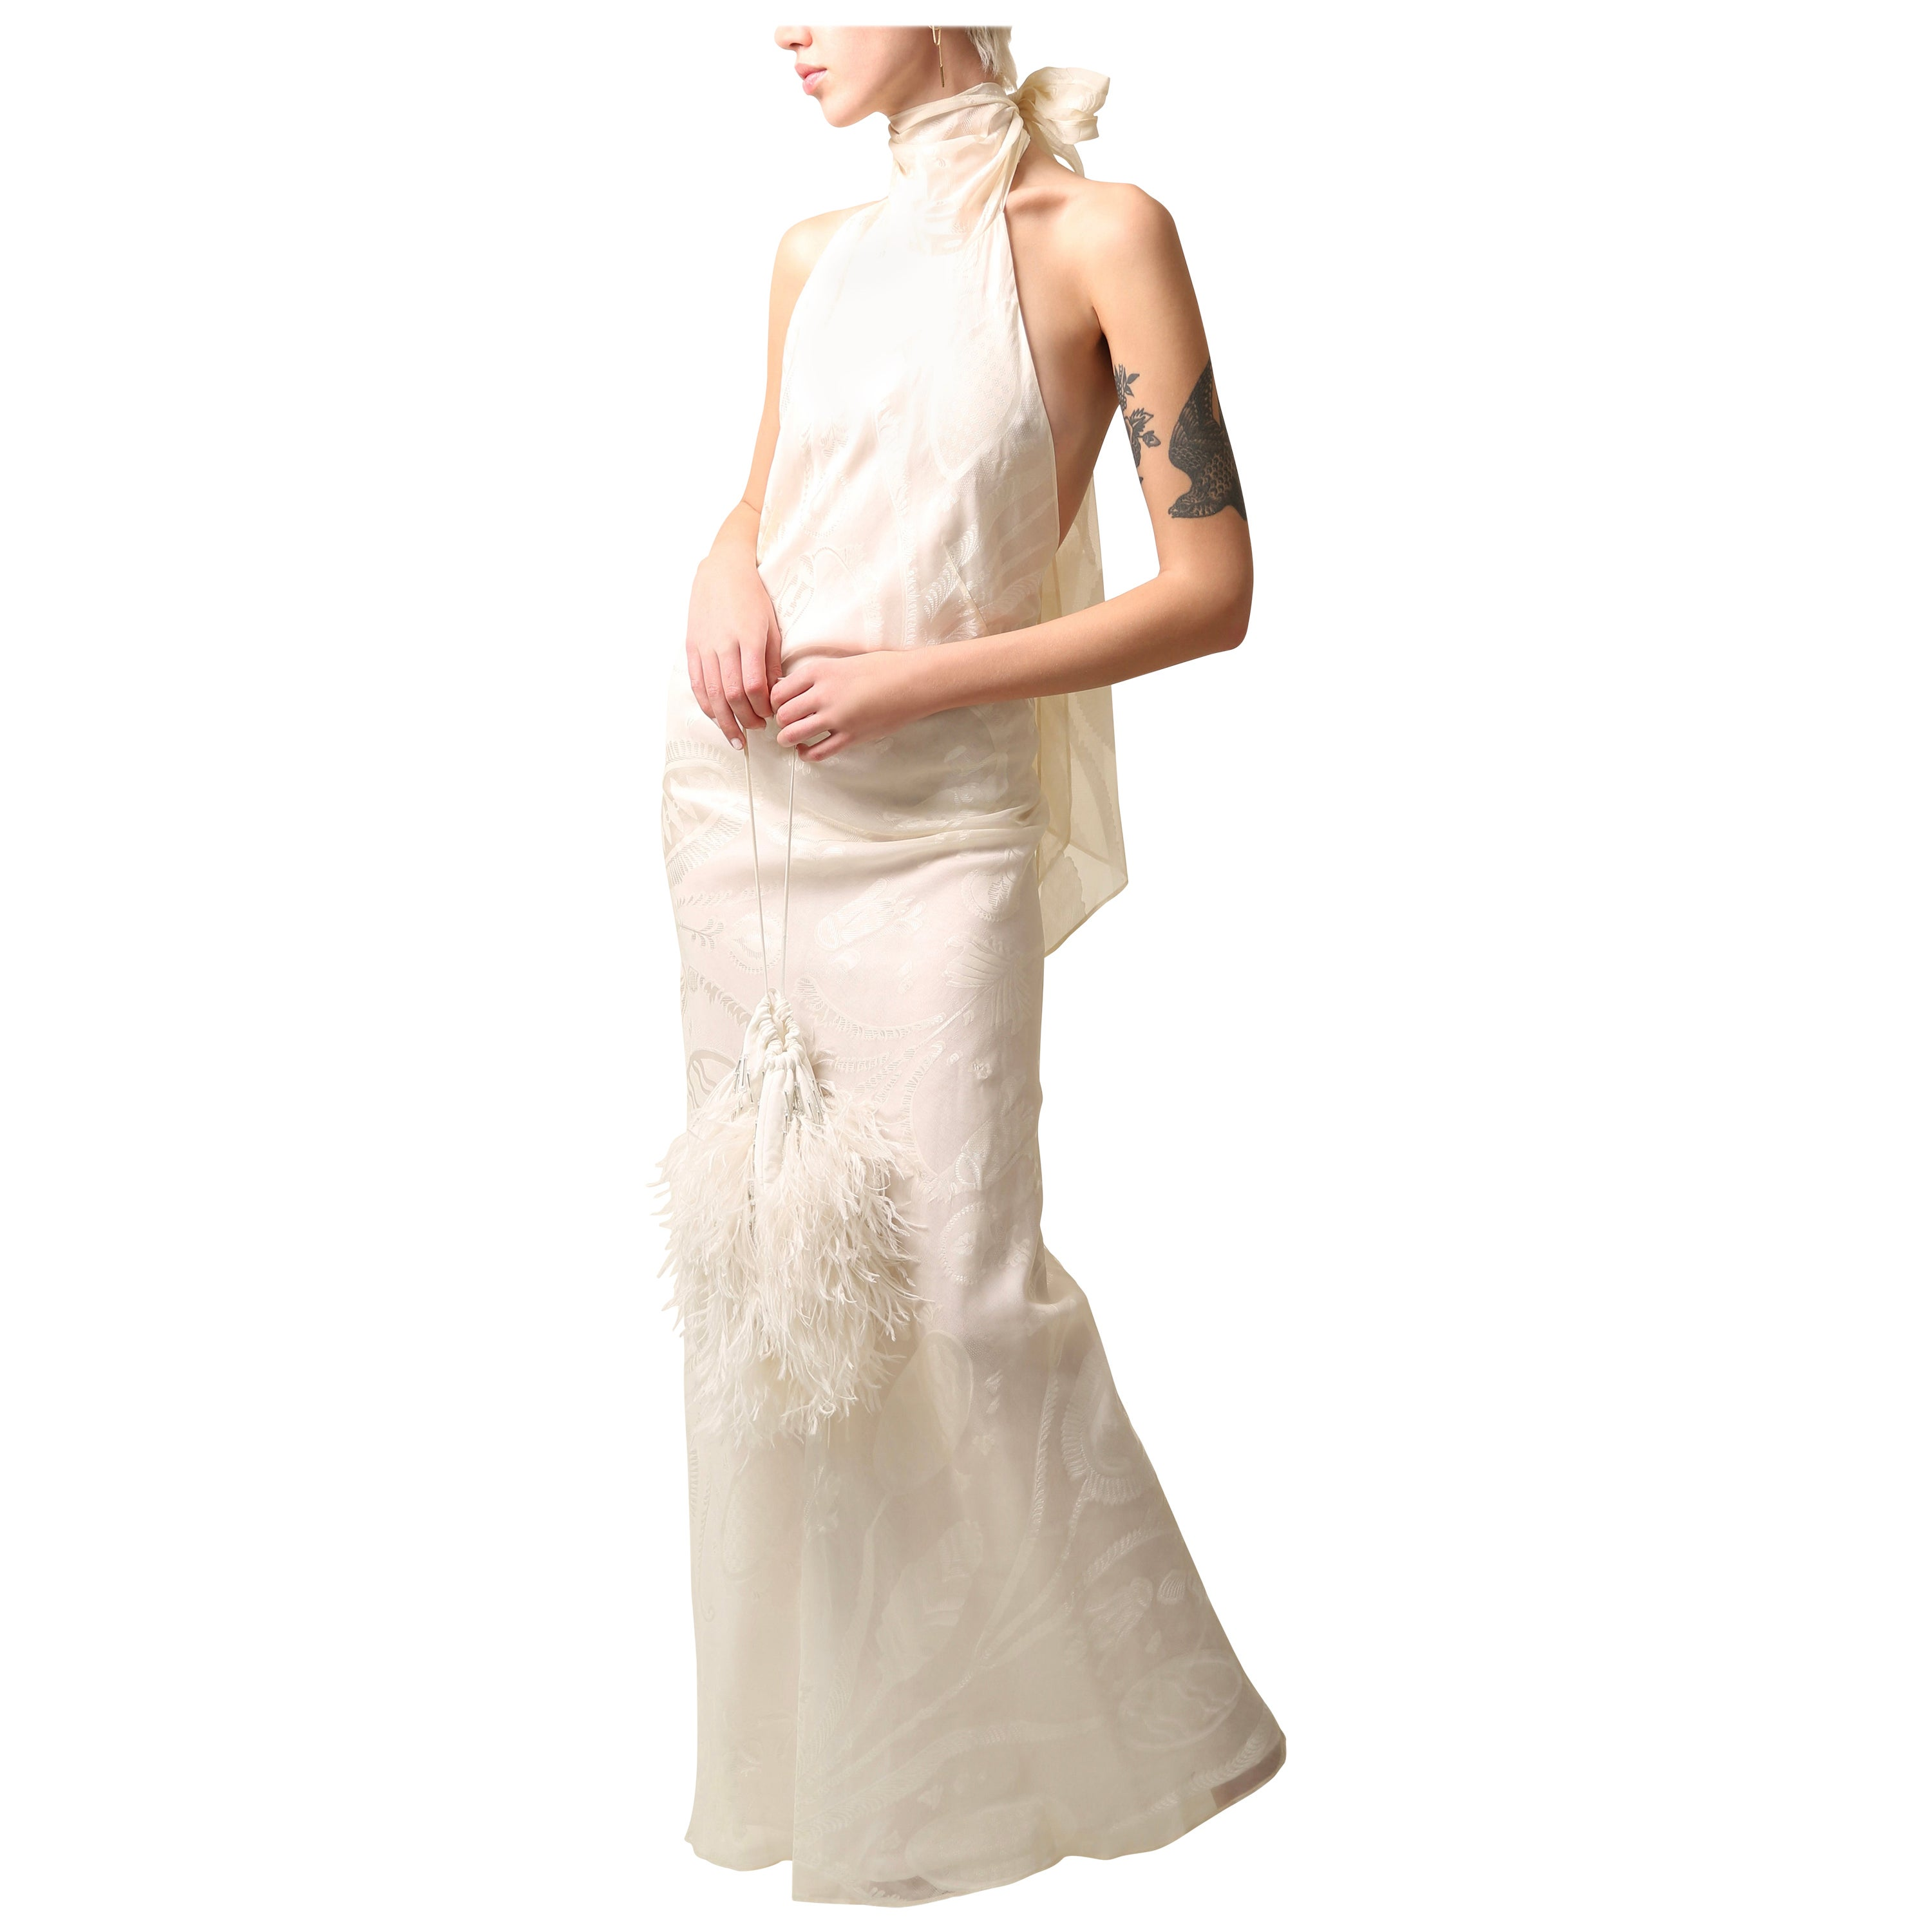 Emilio Pucci 01 vintage ivory floral print silk backless maxi dress wedding gown